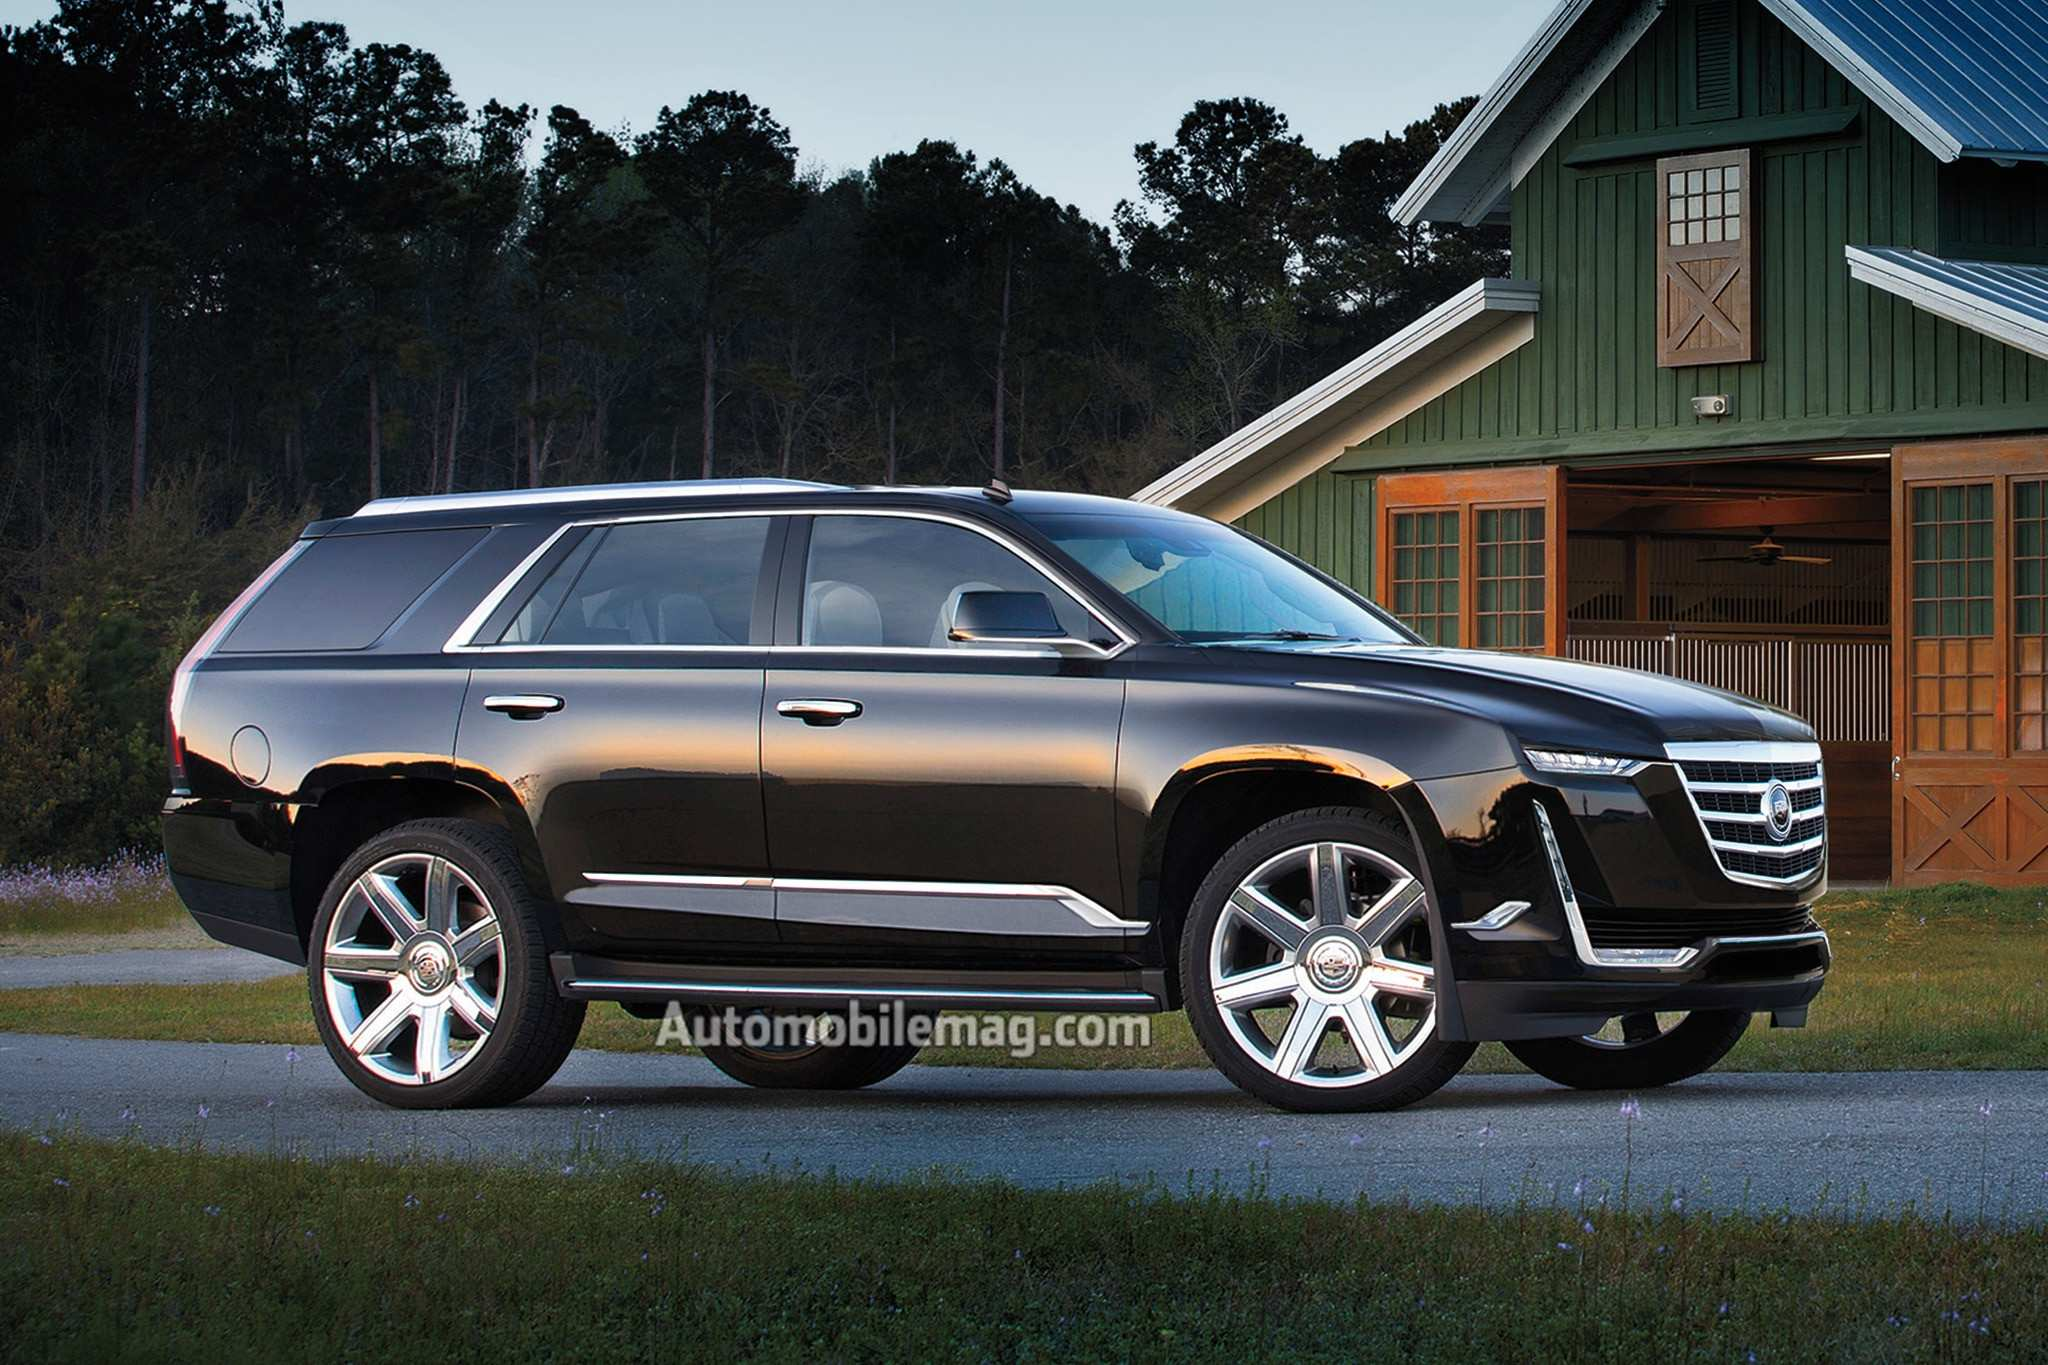 37 Gallery of The Cadillac Escalade 2019 Platinum Exterior Release with The Cadillac Escalade 2019 Platinum Exterior